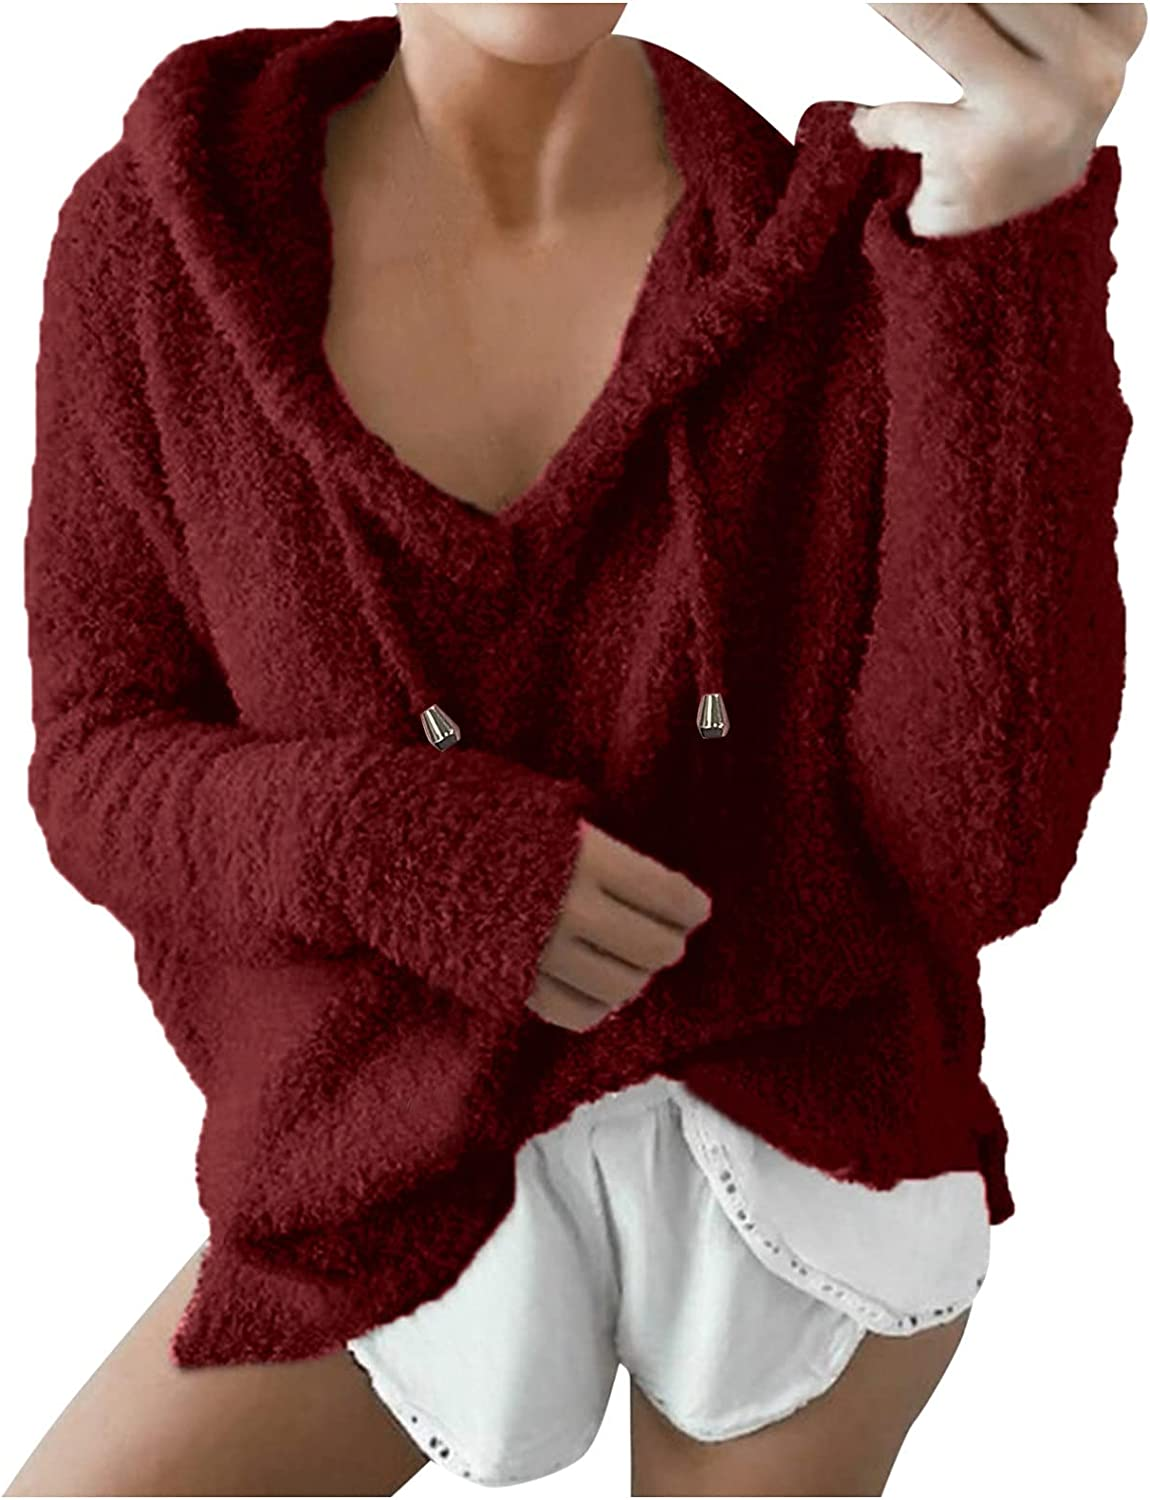 Maryia Oversized Sweaters for Women Plush Mohair Casual Loose Cozy Hooded Sweatshirt Drawstring Pullover Tops